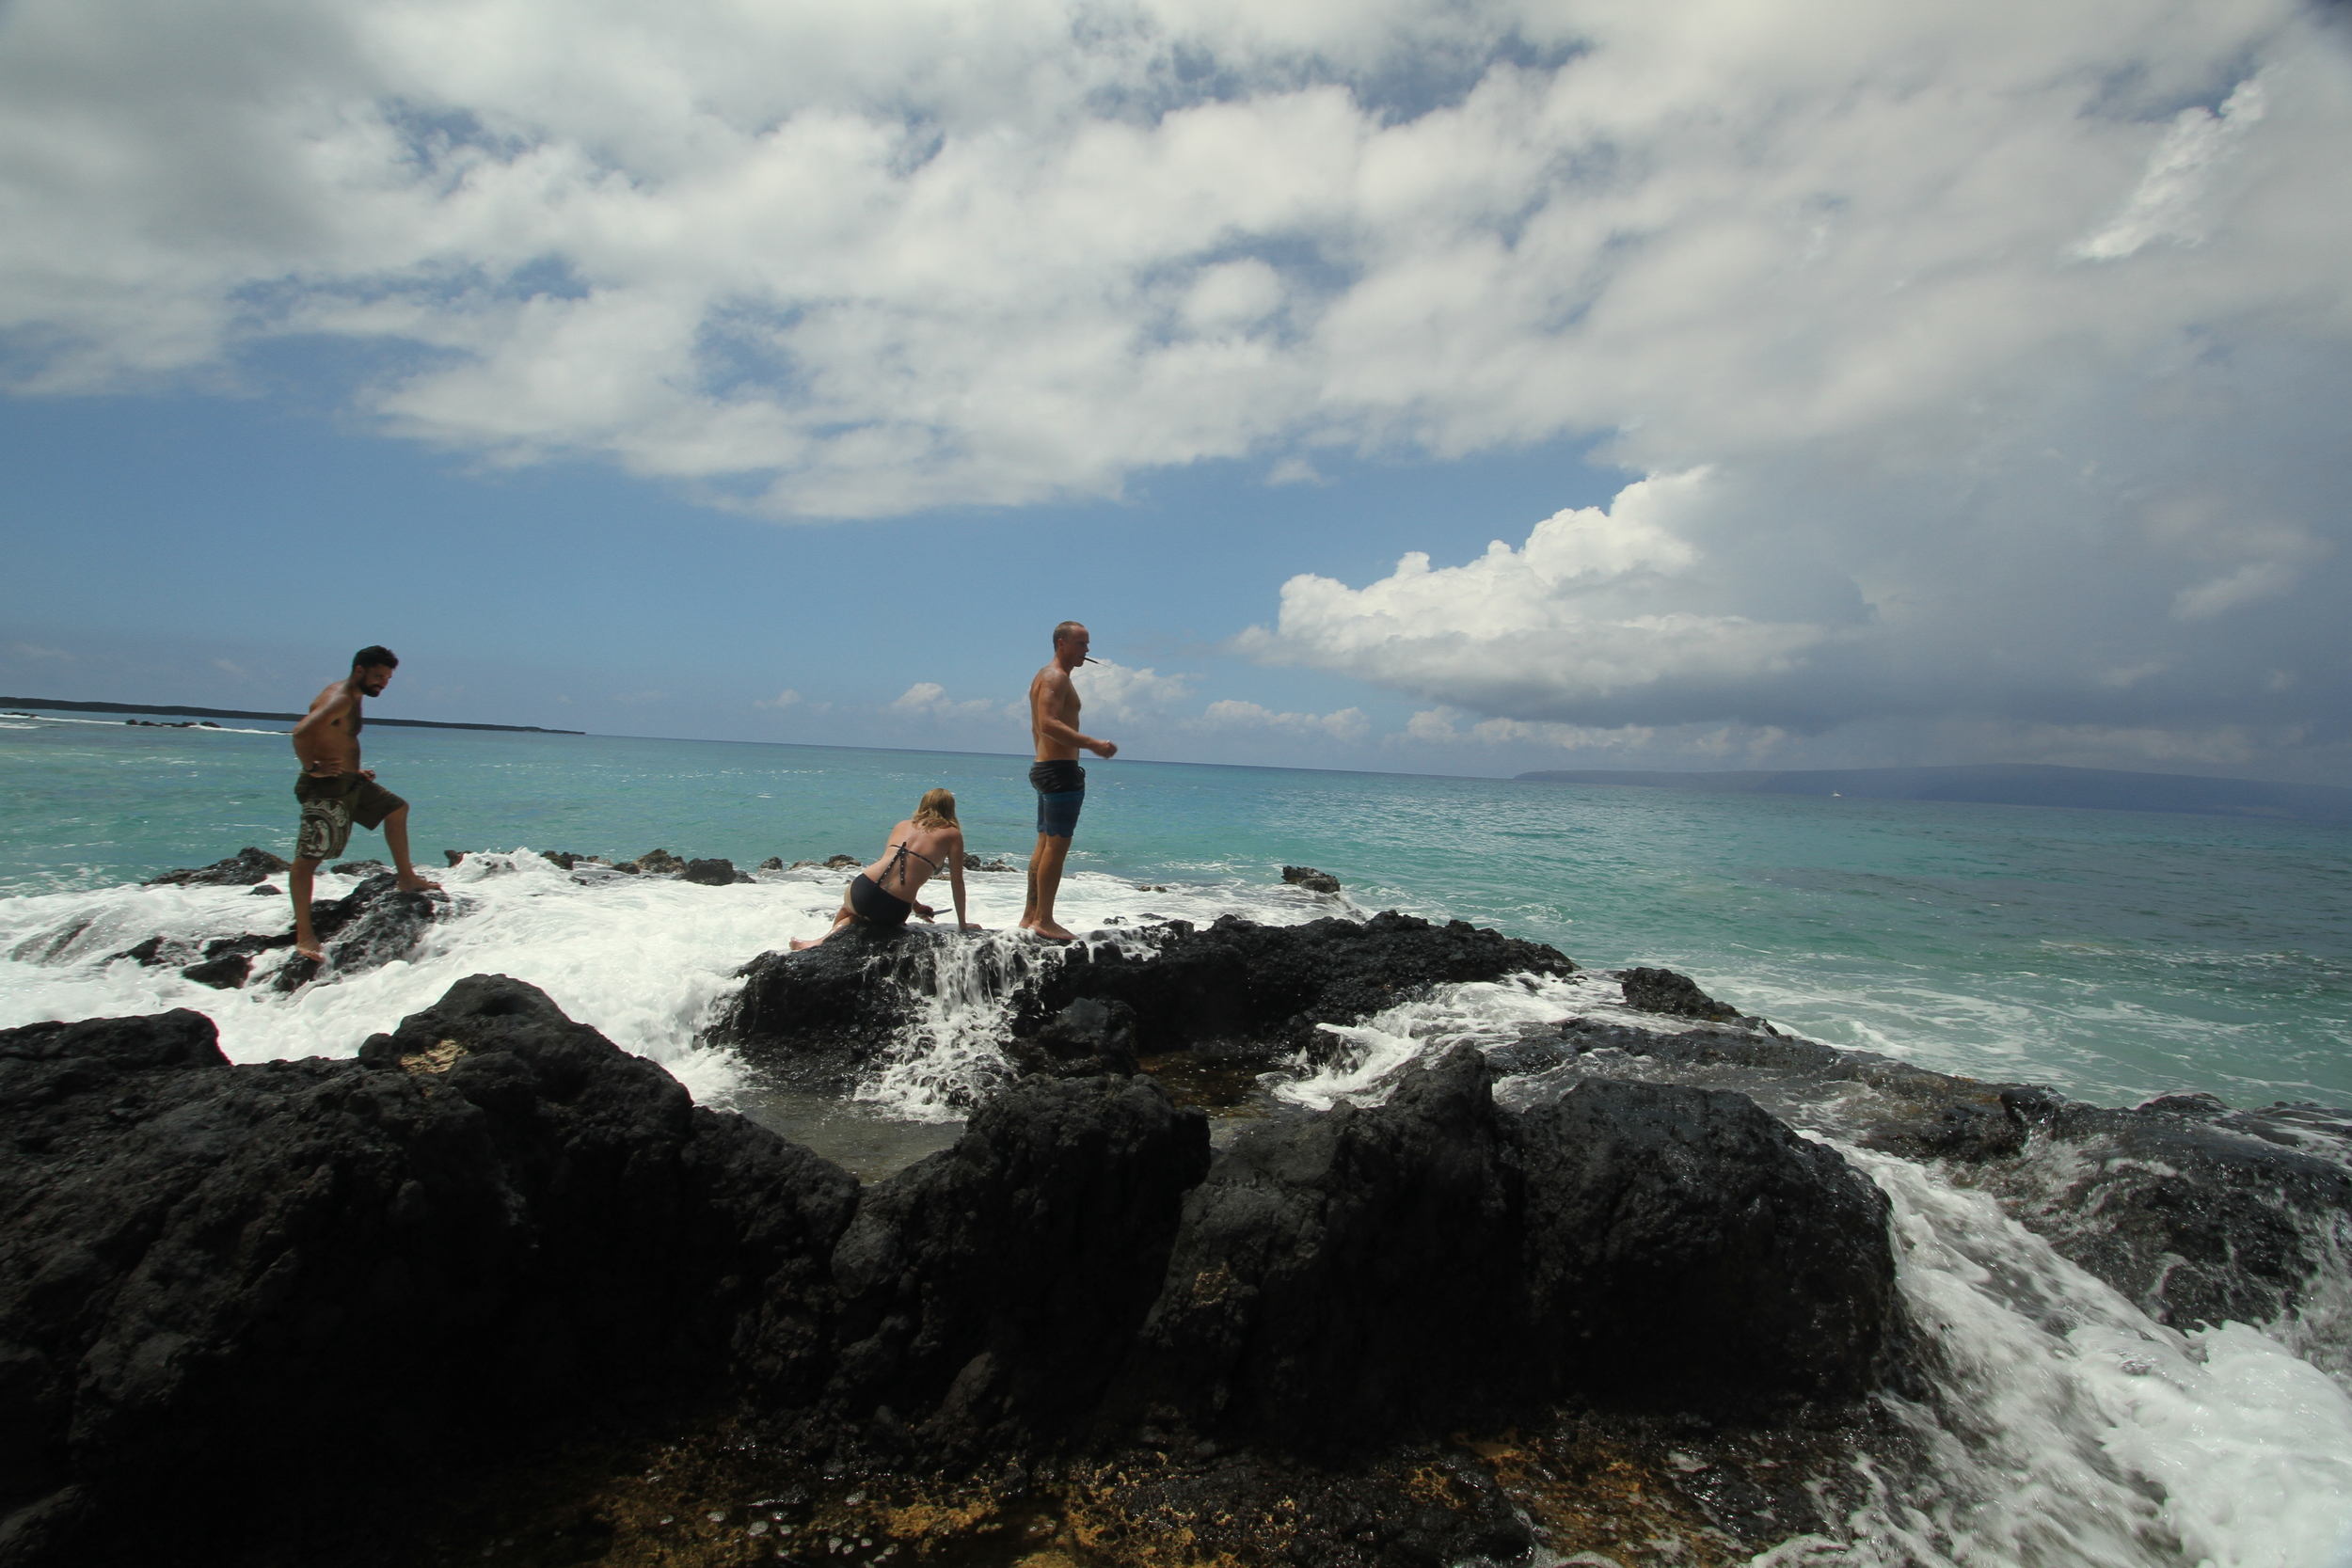 The guys & I waiting for the waves to give us room to forage. Notice their confidence!